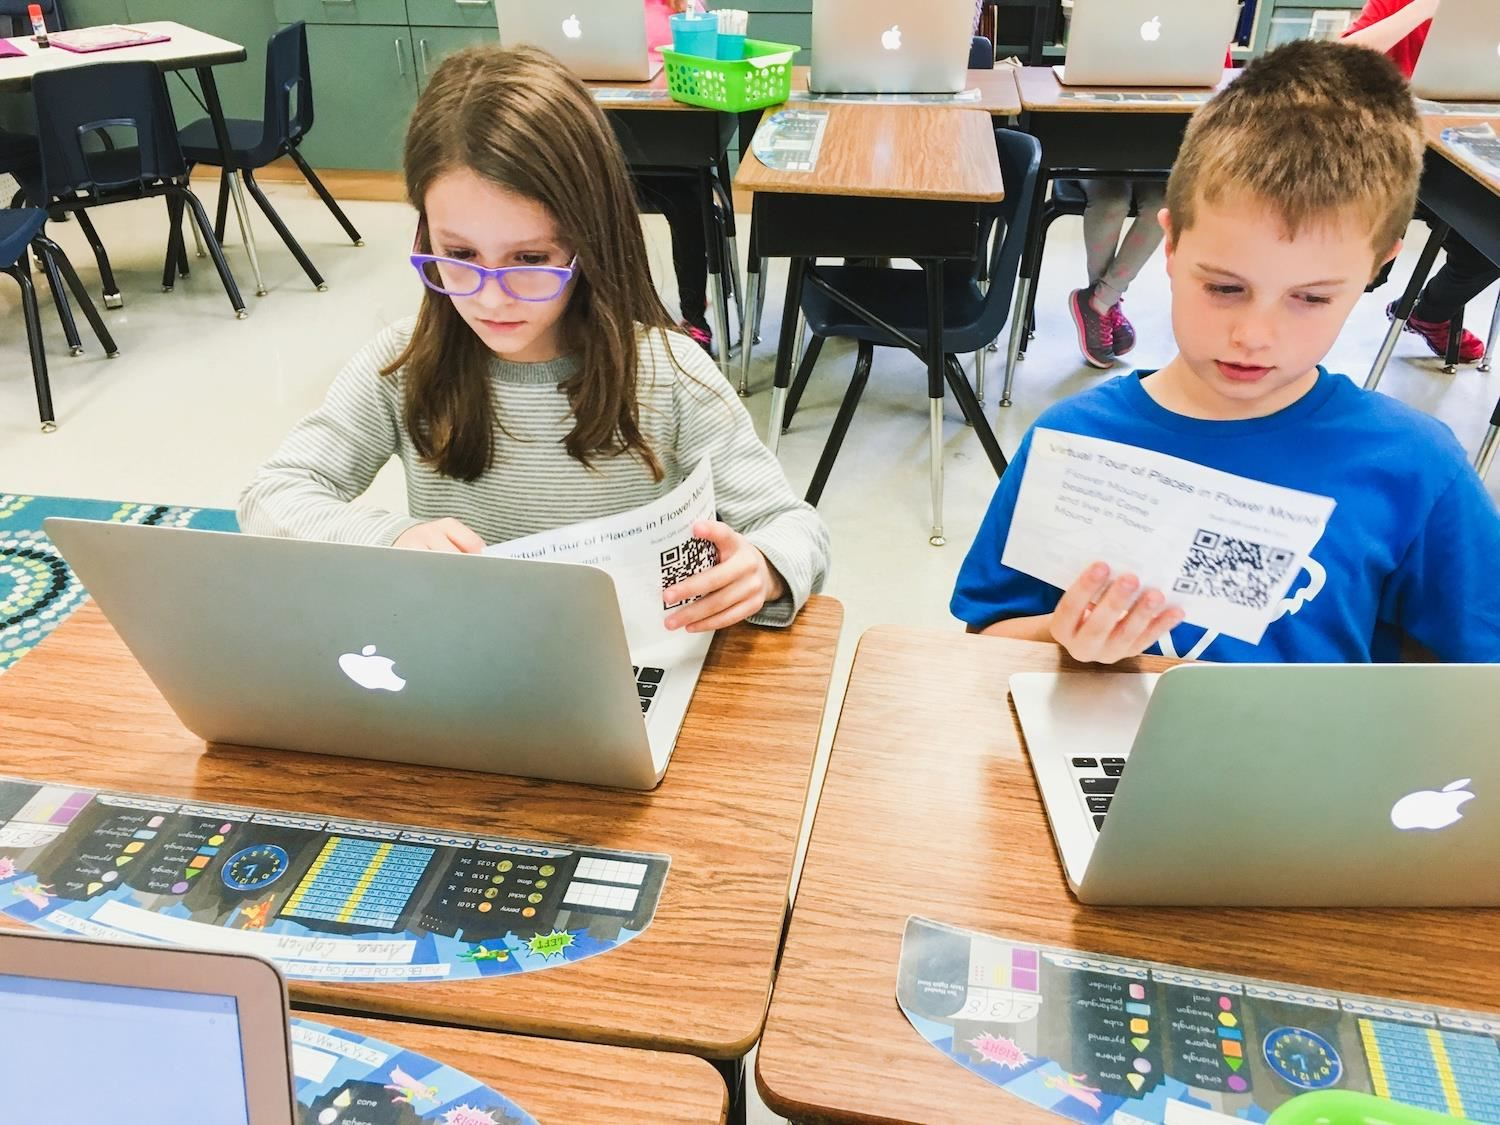 Bridlwood students work on laptop computers